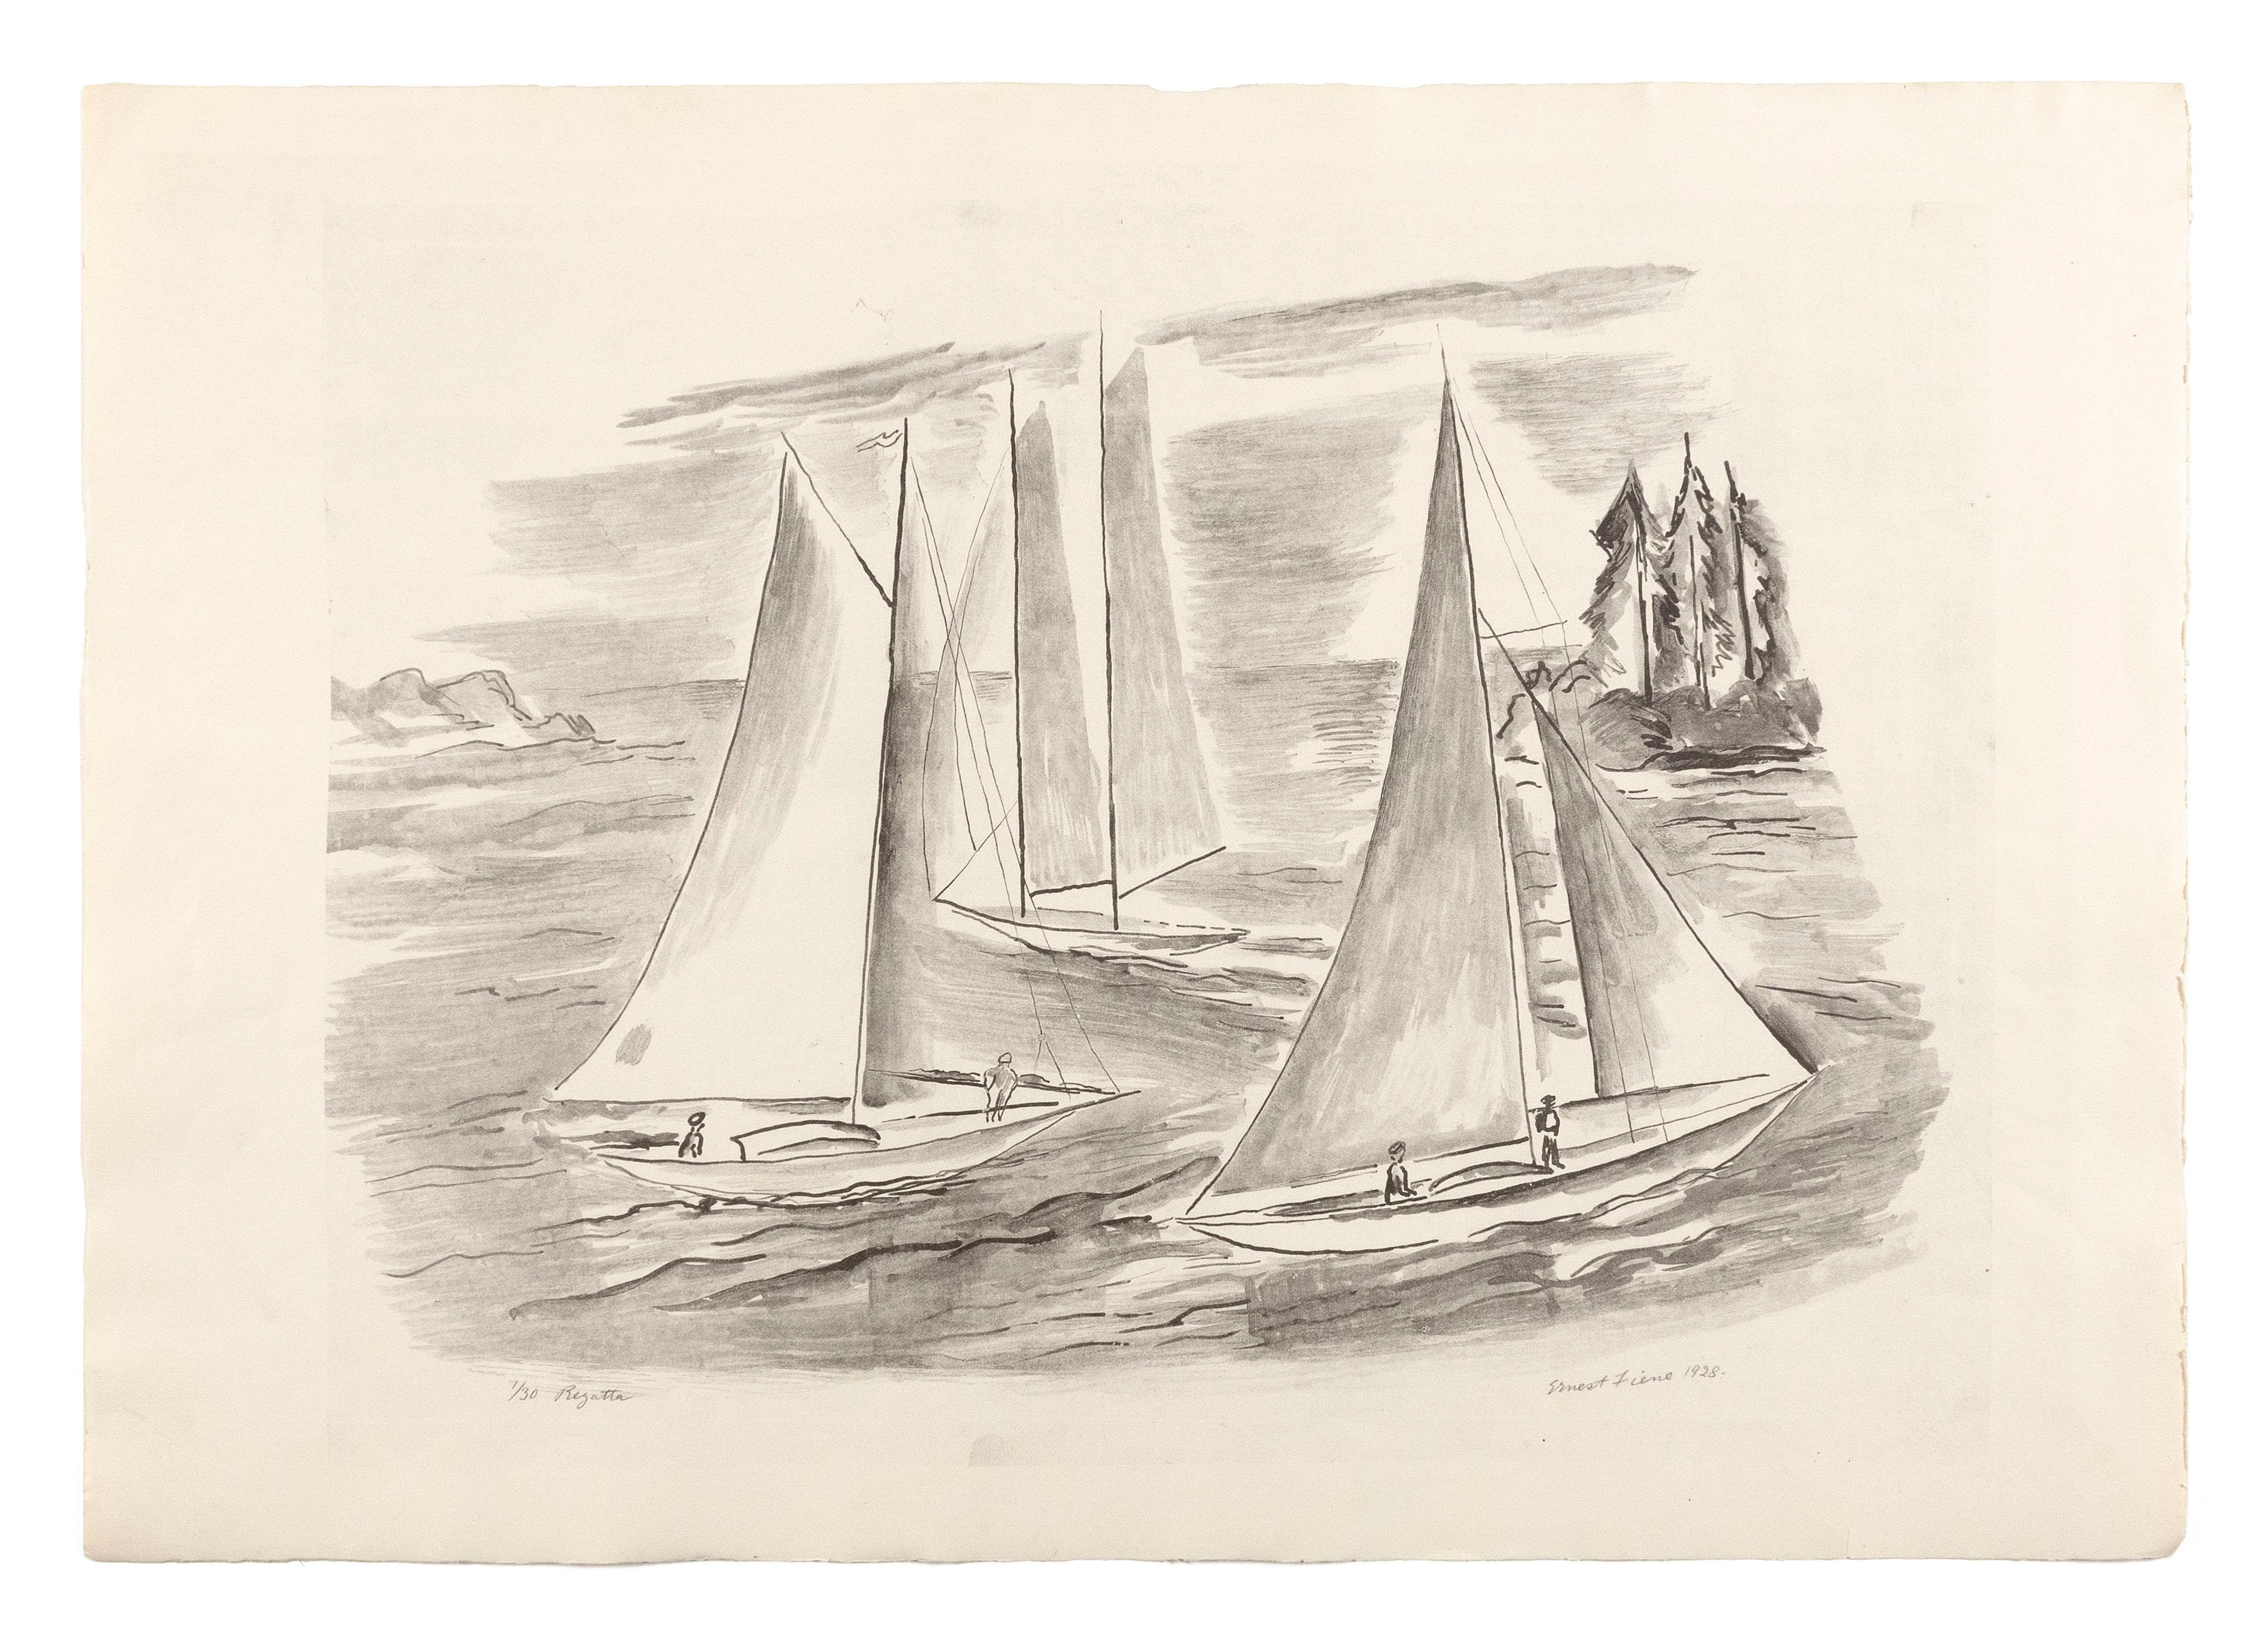 """ERNEST FIENE, New York/Germany, 1894-1965, """"Regatta"""". Edition 30, #1., Lithograph on Rives paper, image size 11.75"""" x 17.25"""". Paper..."""